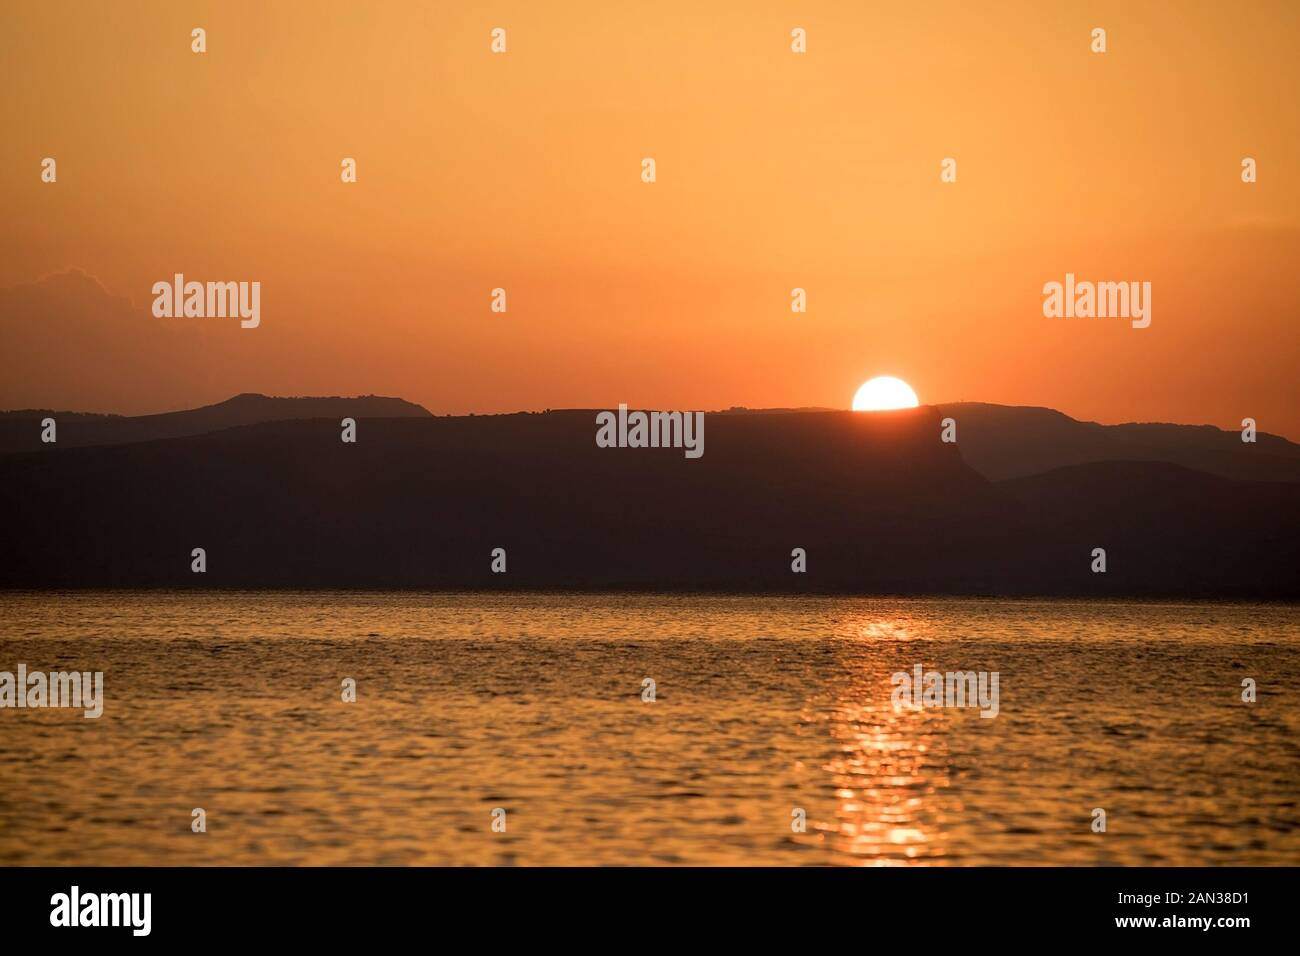 Sunset over the Sea of Galilee, Israel's largest freshwater lake Stock Photo